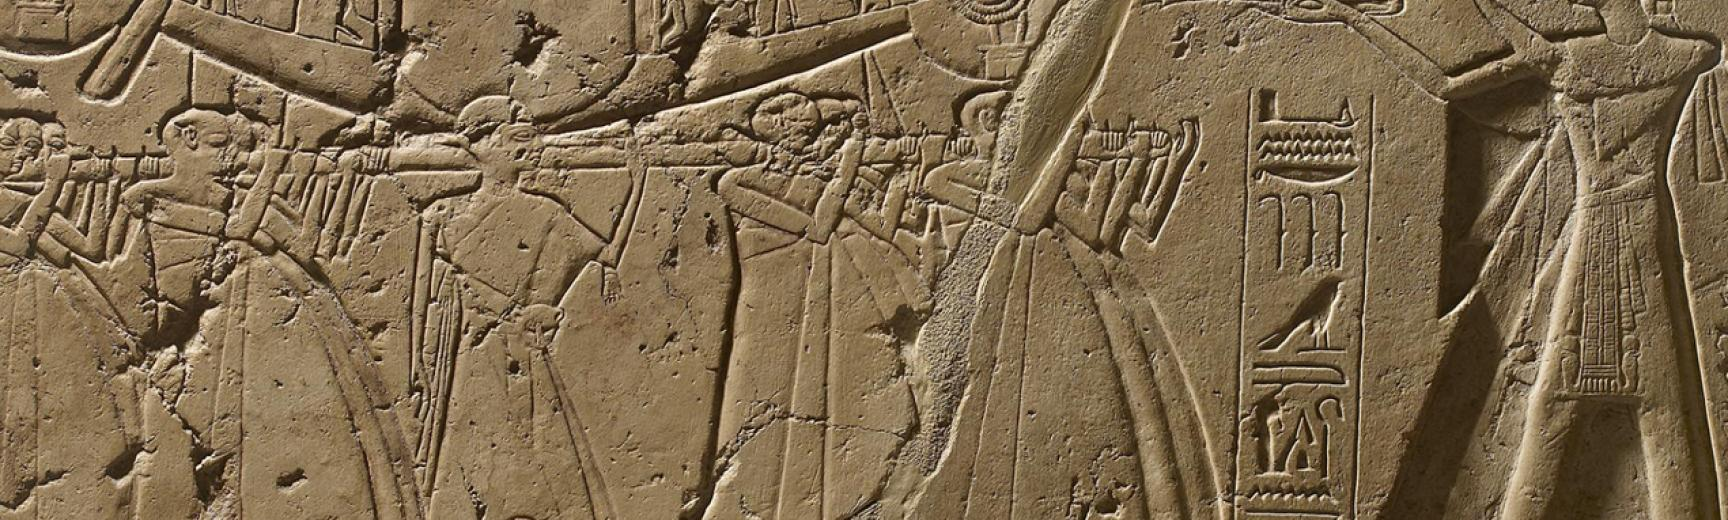 EGYPT IN THE AGE OF EMPIRES at the Ashmolean